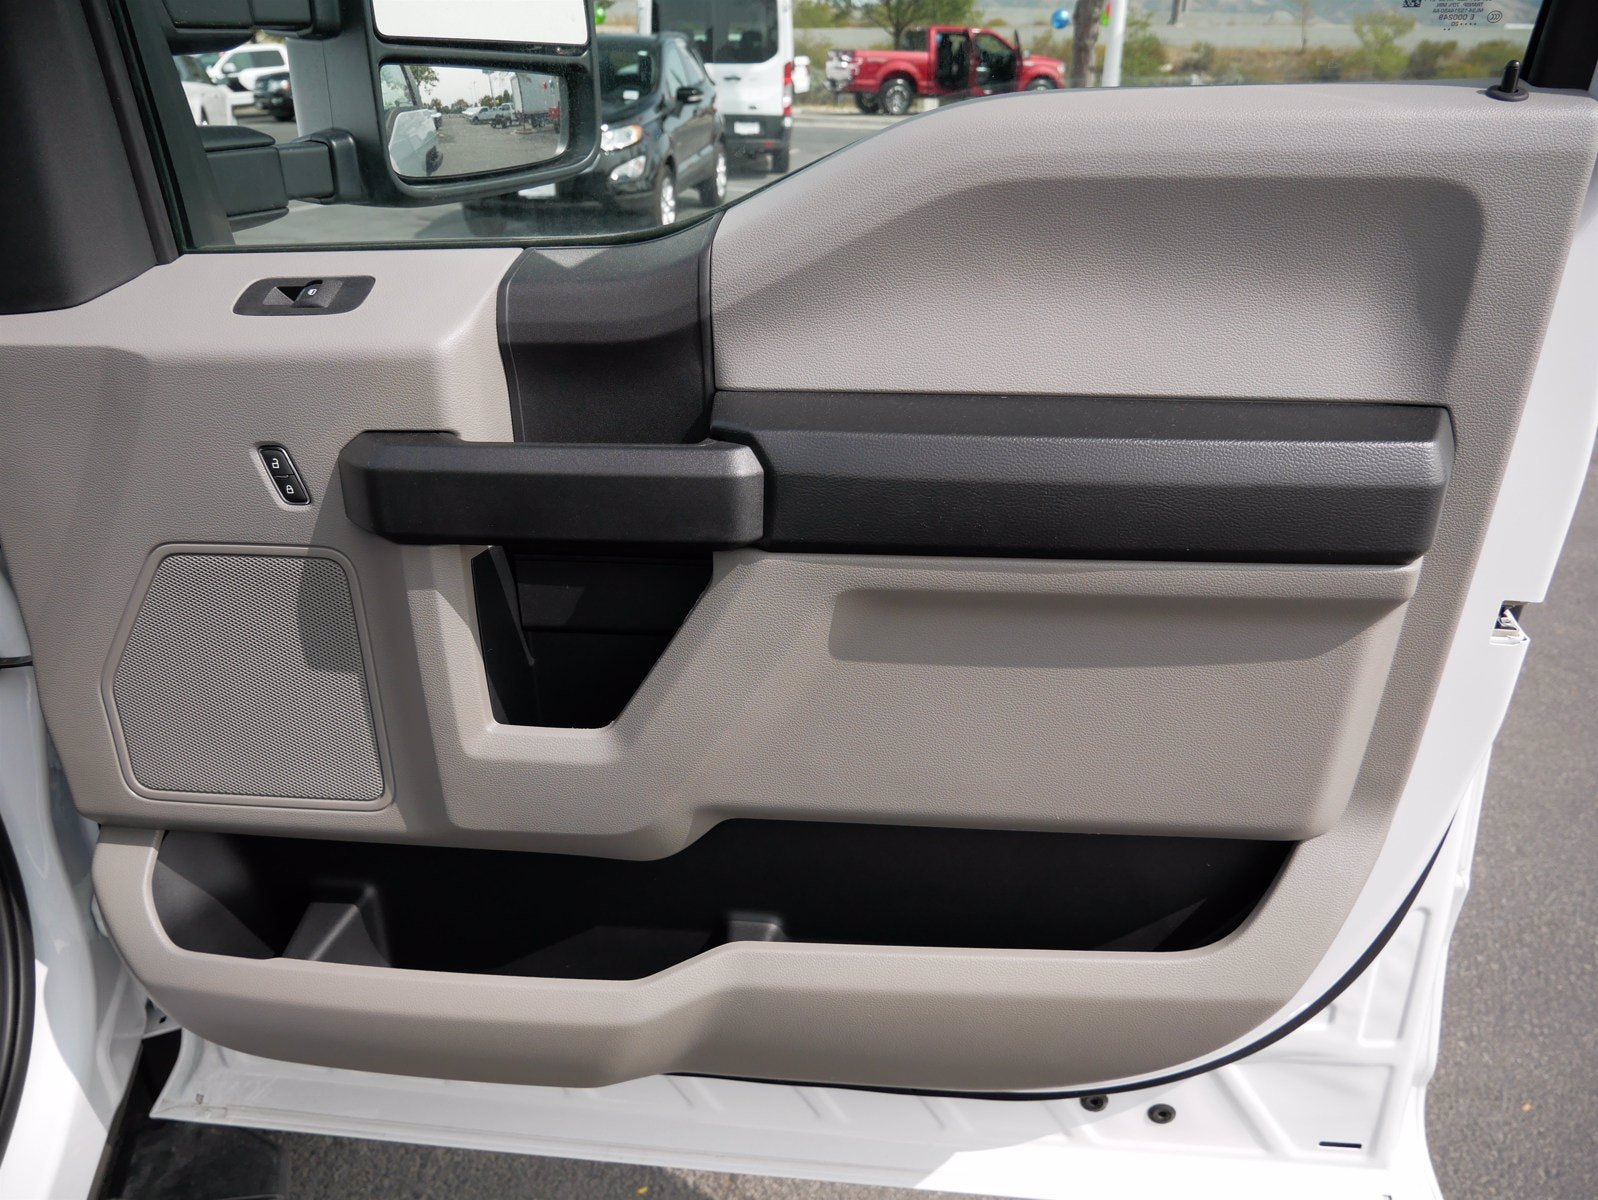 2020 Ford F-550 Regular Cab DRW 4x4, Cab Chassis #63156 - photo 24